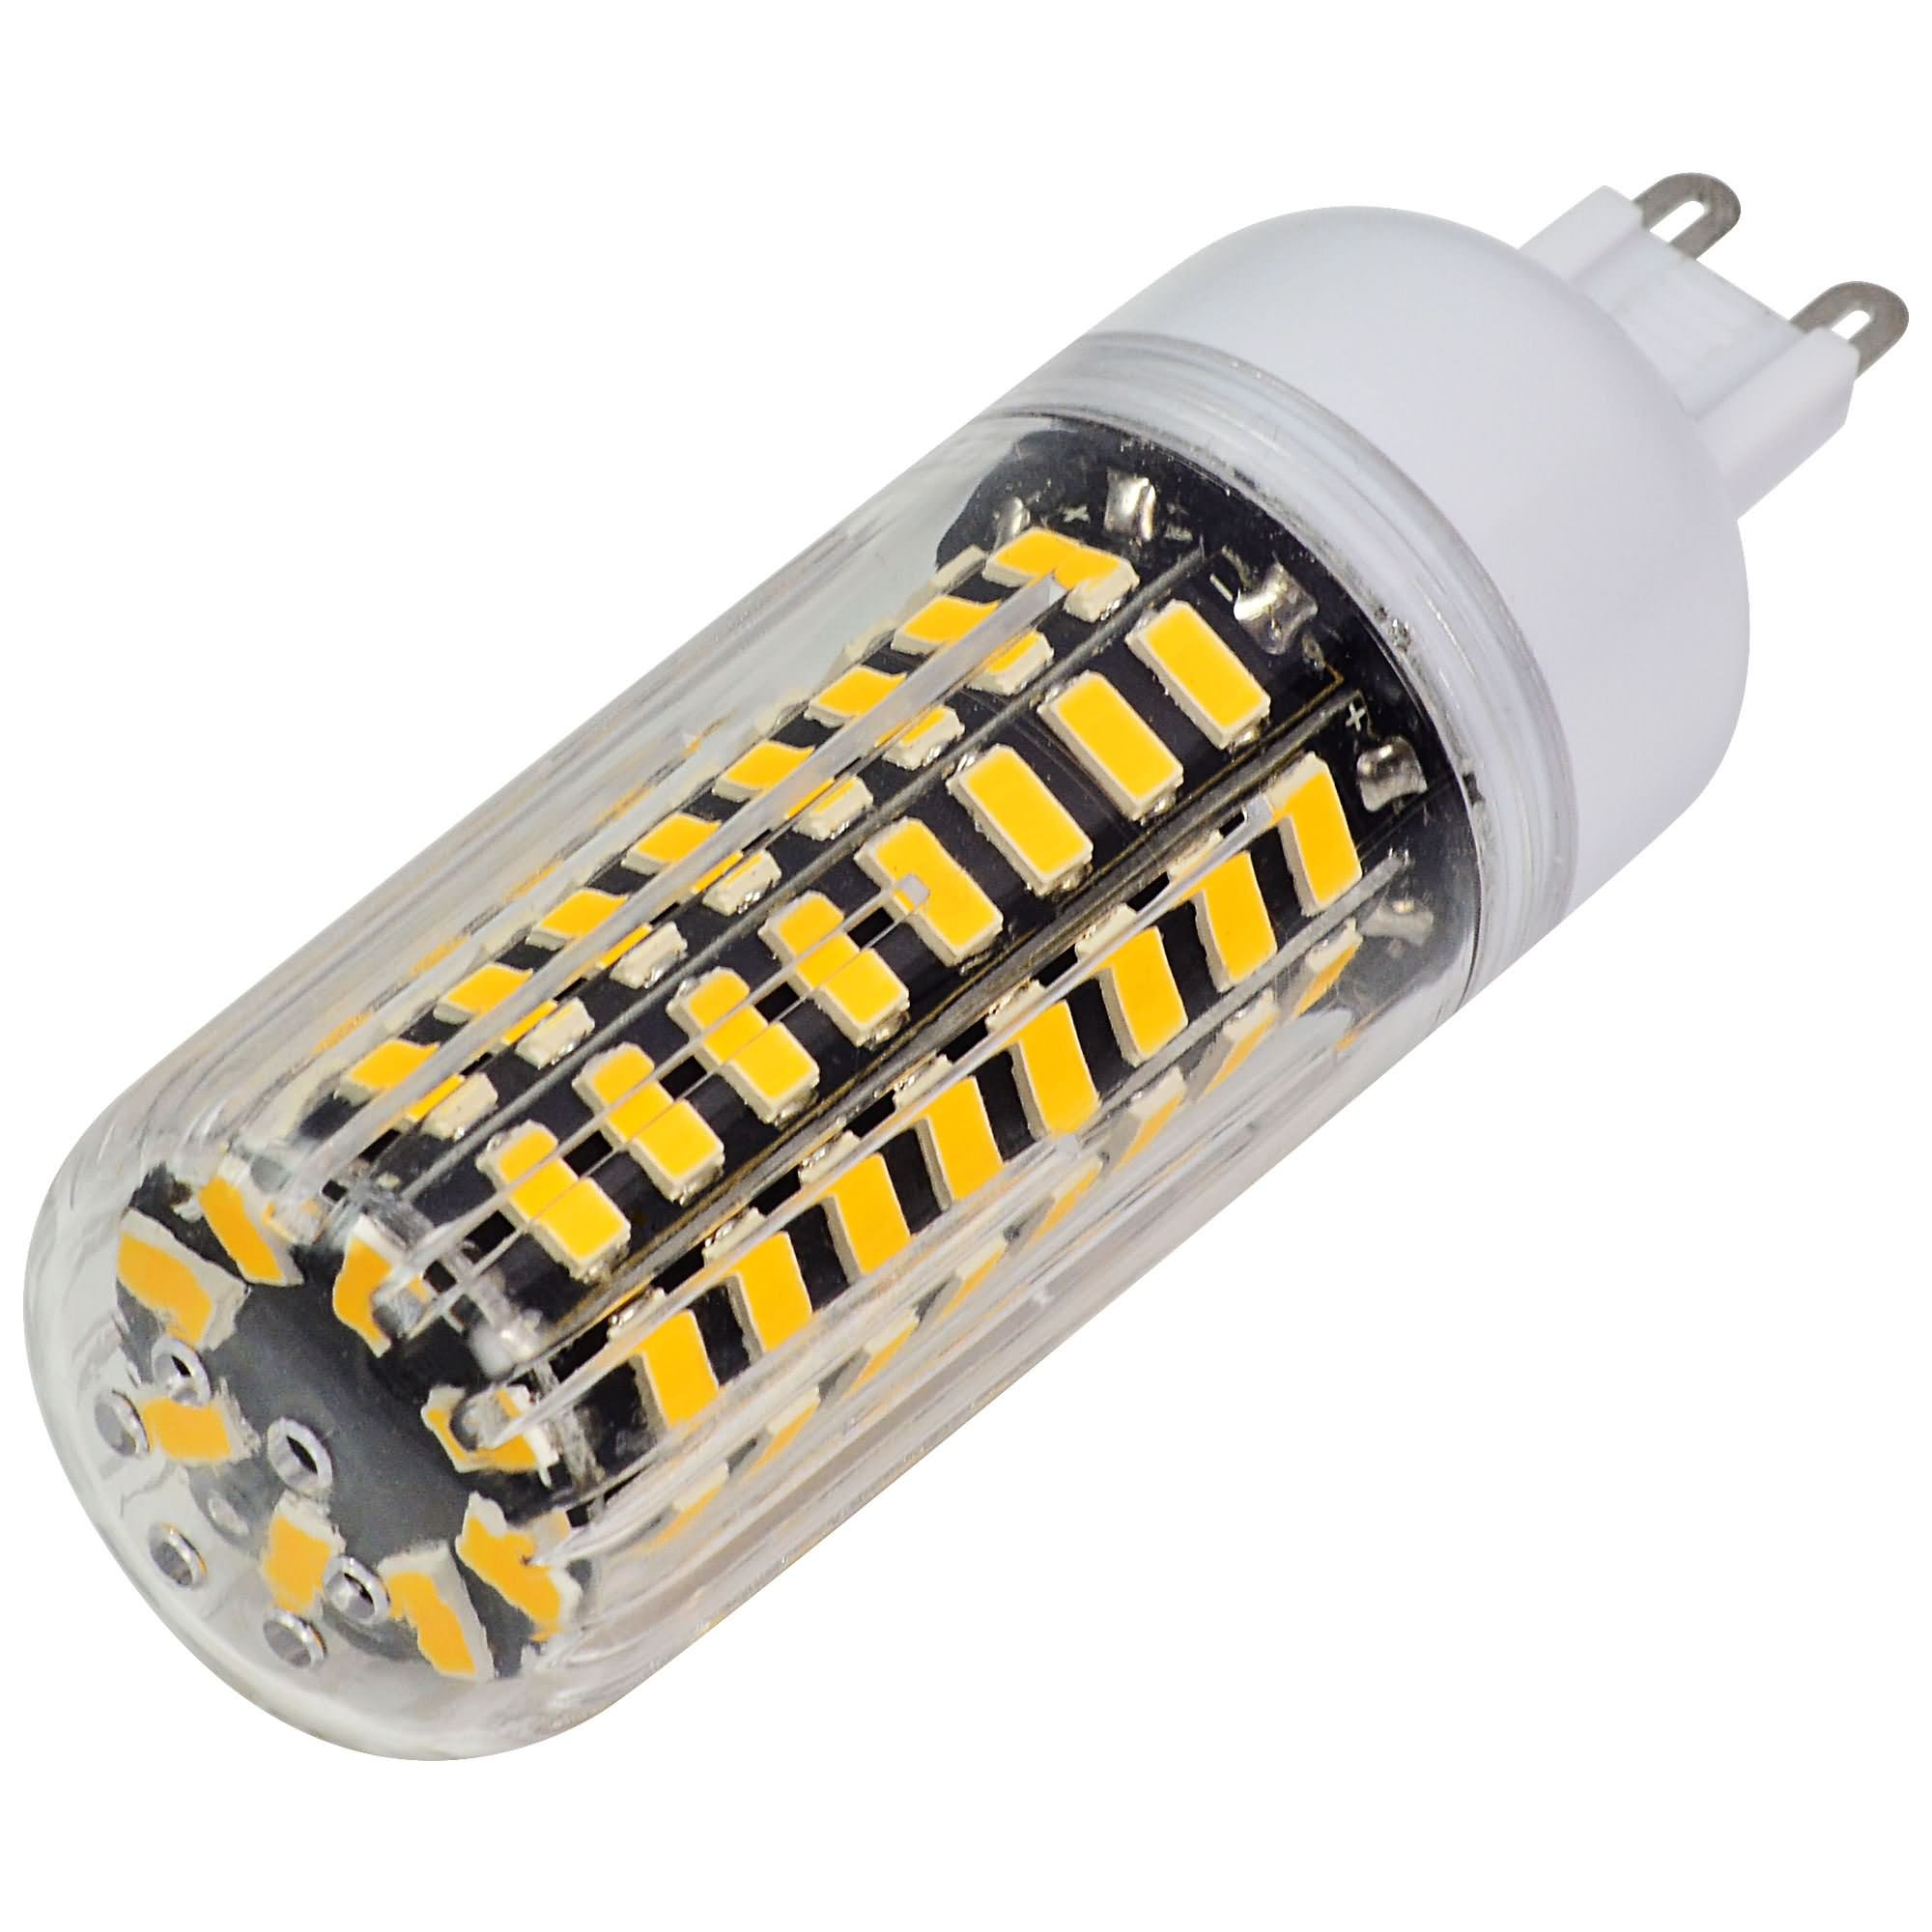 Mengsled Mengs G9 11w Led Corn Light 80x 5733 Smd Led Bulb Lamp In Warm White Cool White